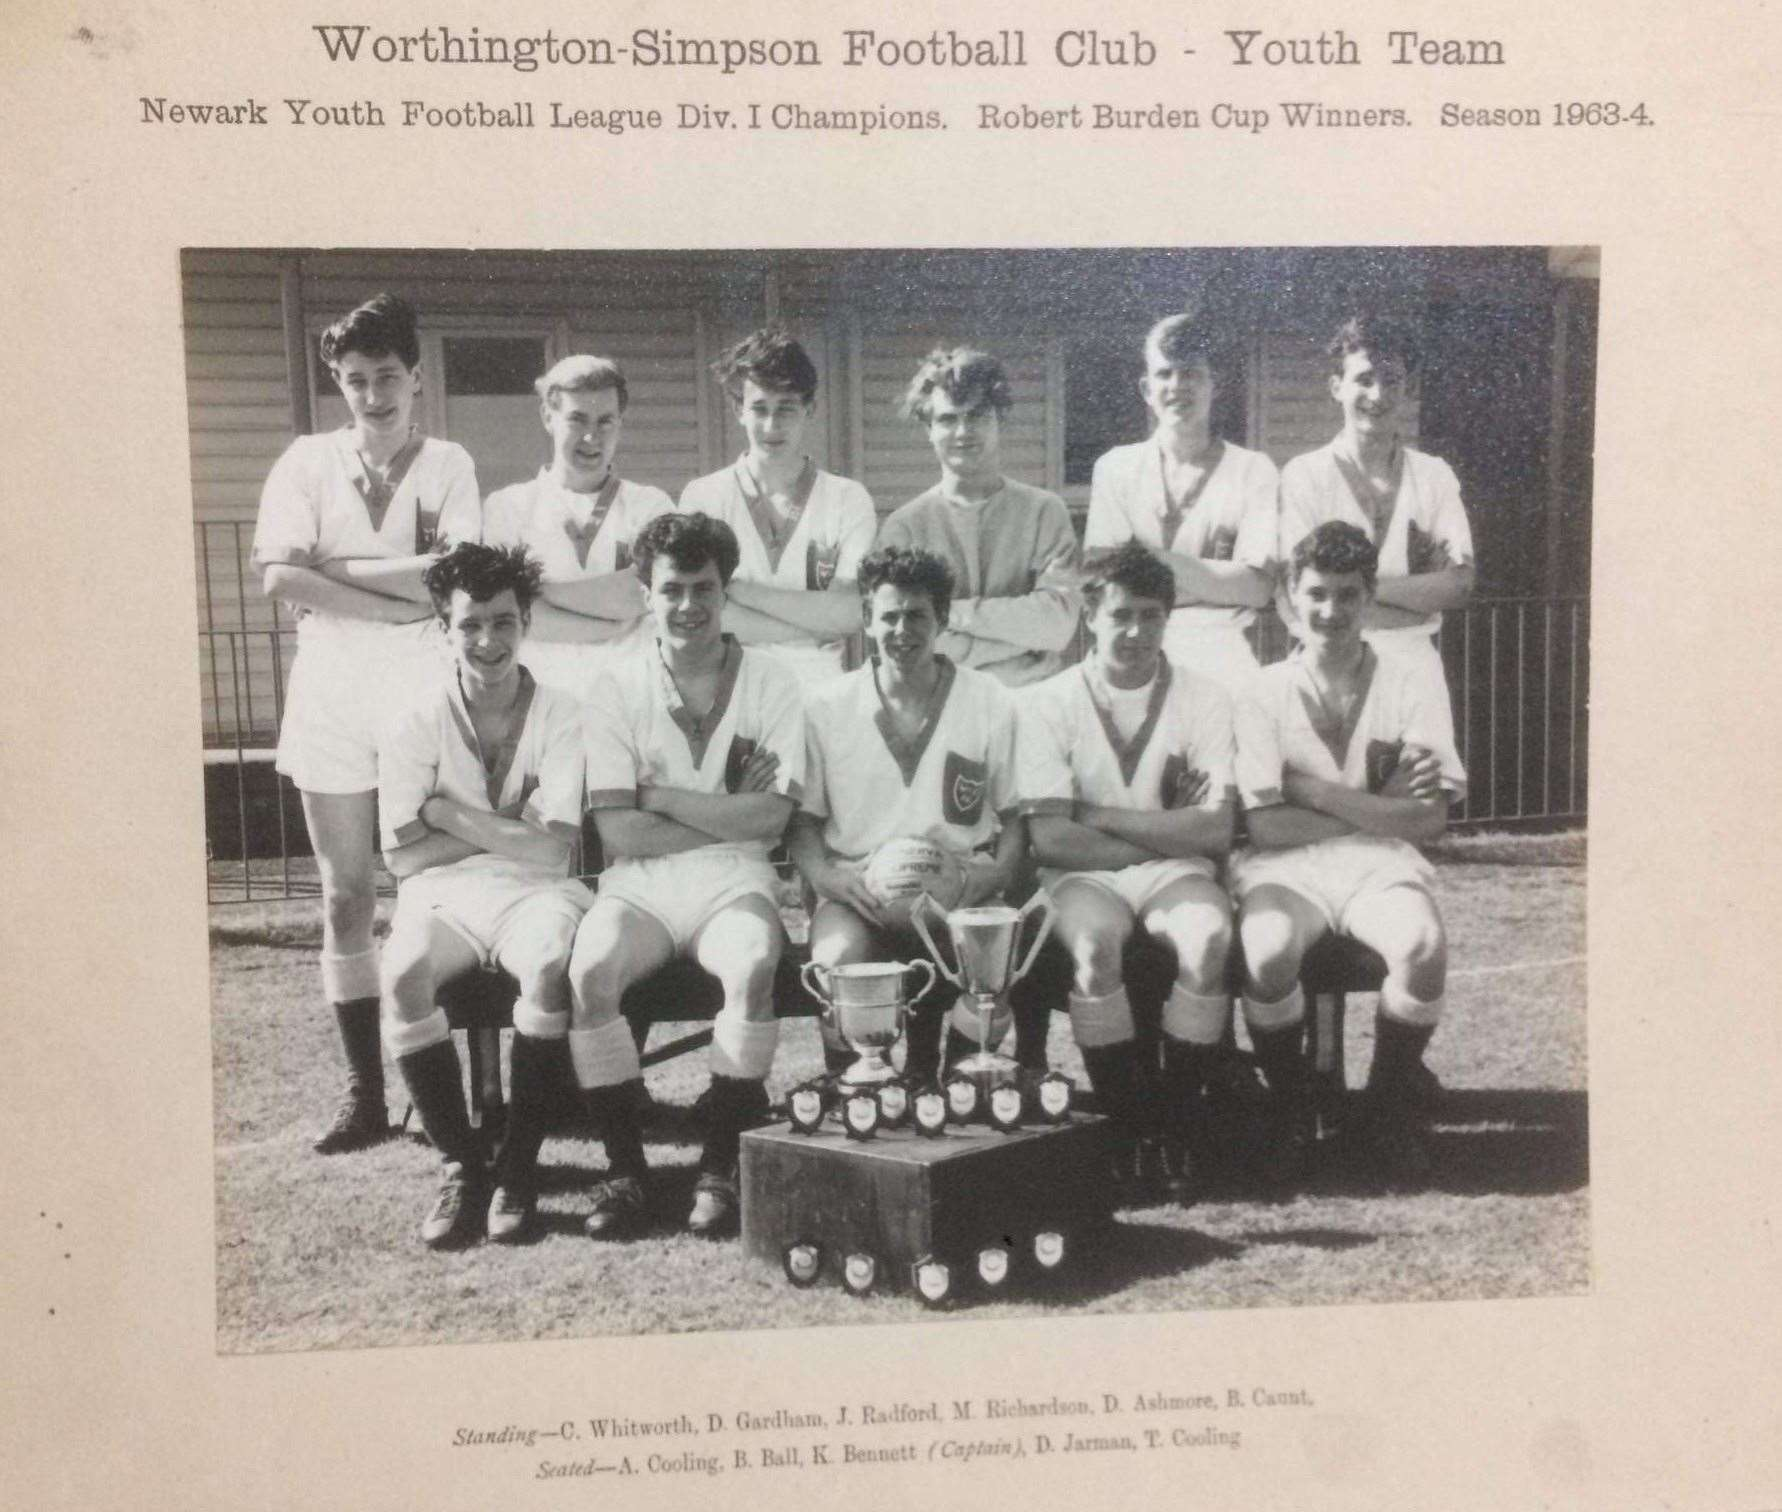 Worthington Simpson Football Club, Youth Team. Newark Youth Football League Div. 1 Champions and Robert Burden Cup winners — Season 1963/64. Alvyn Cooling is pictured on the front row, first from the left.